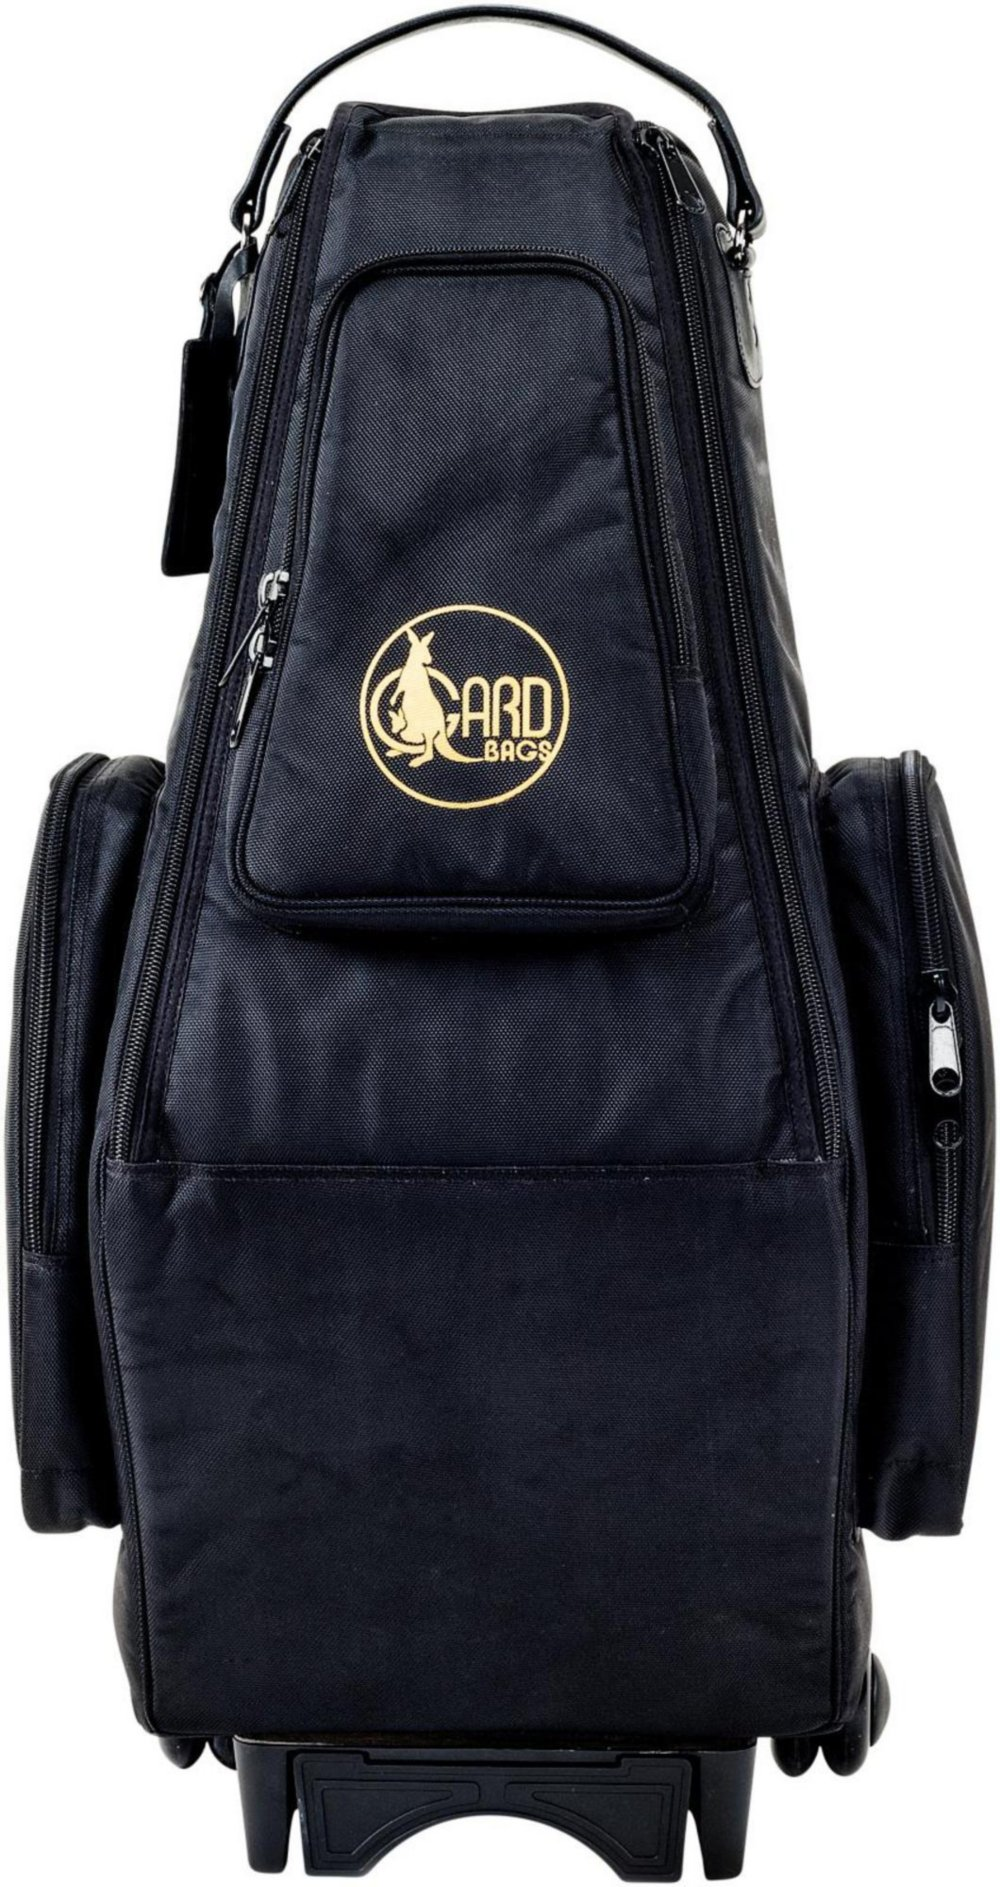 Gard Saxophone Wheelie Bag in Synthetic with